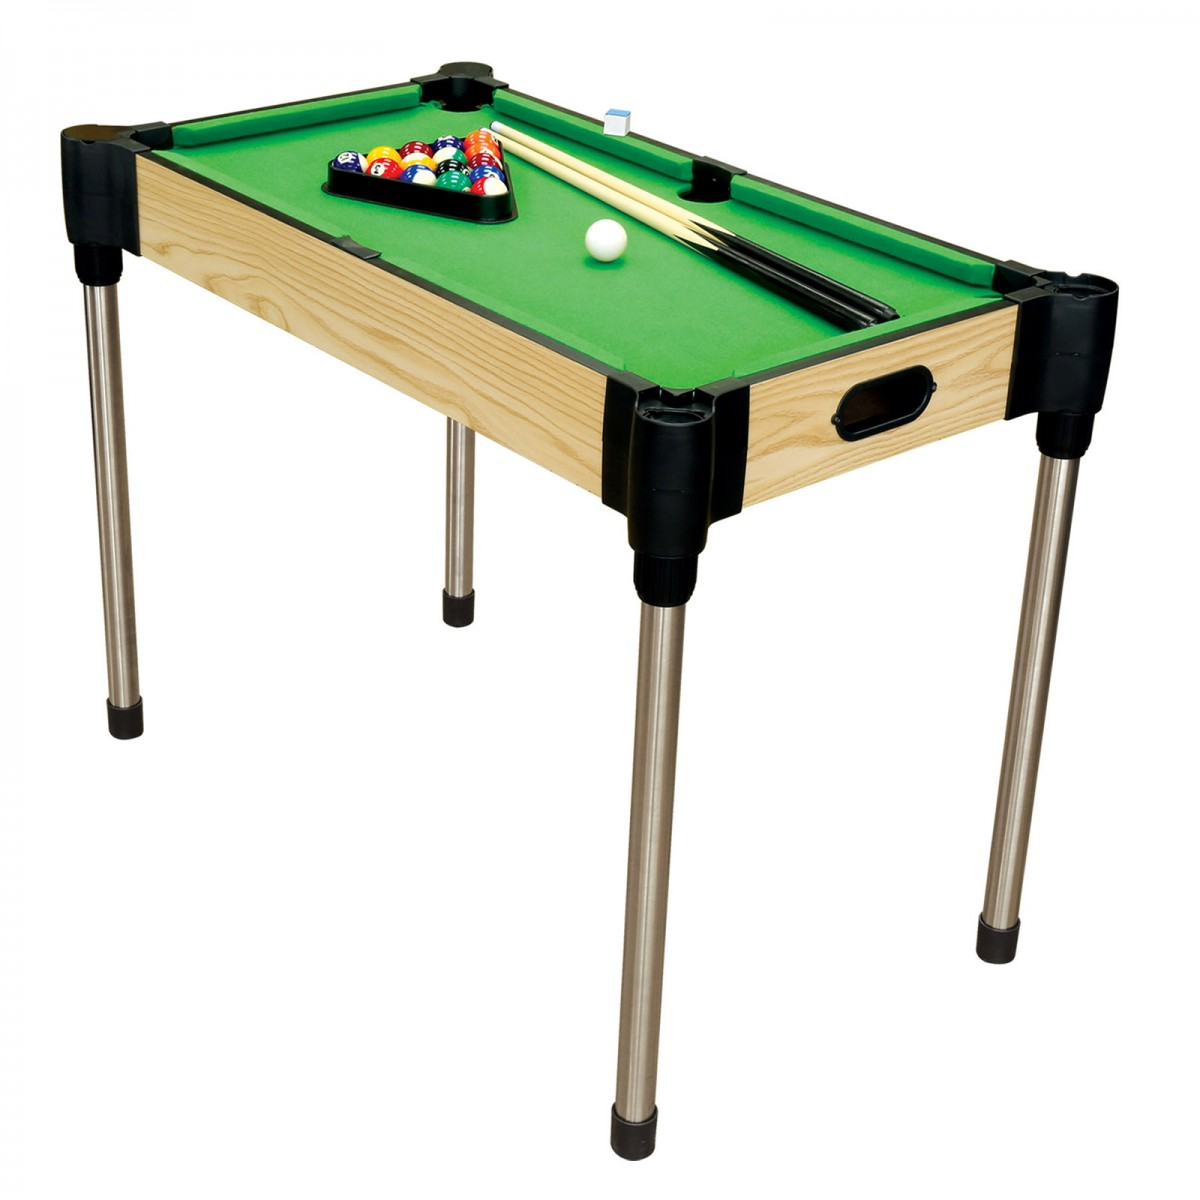 Cm In Table Pool Table Tennis Ping Pong Slide - Table tennis and billiards table